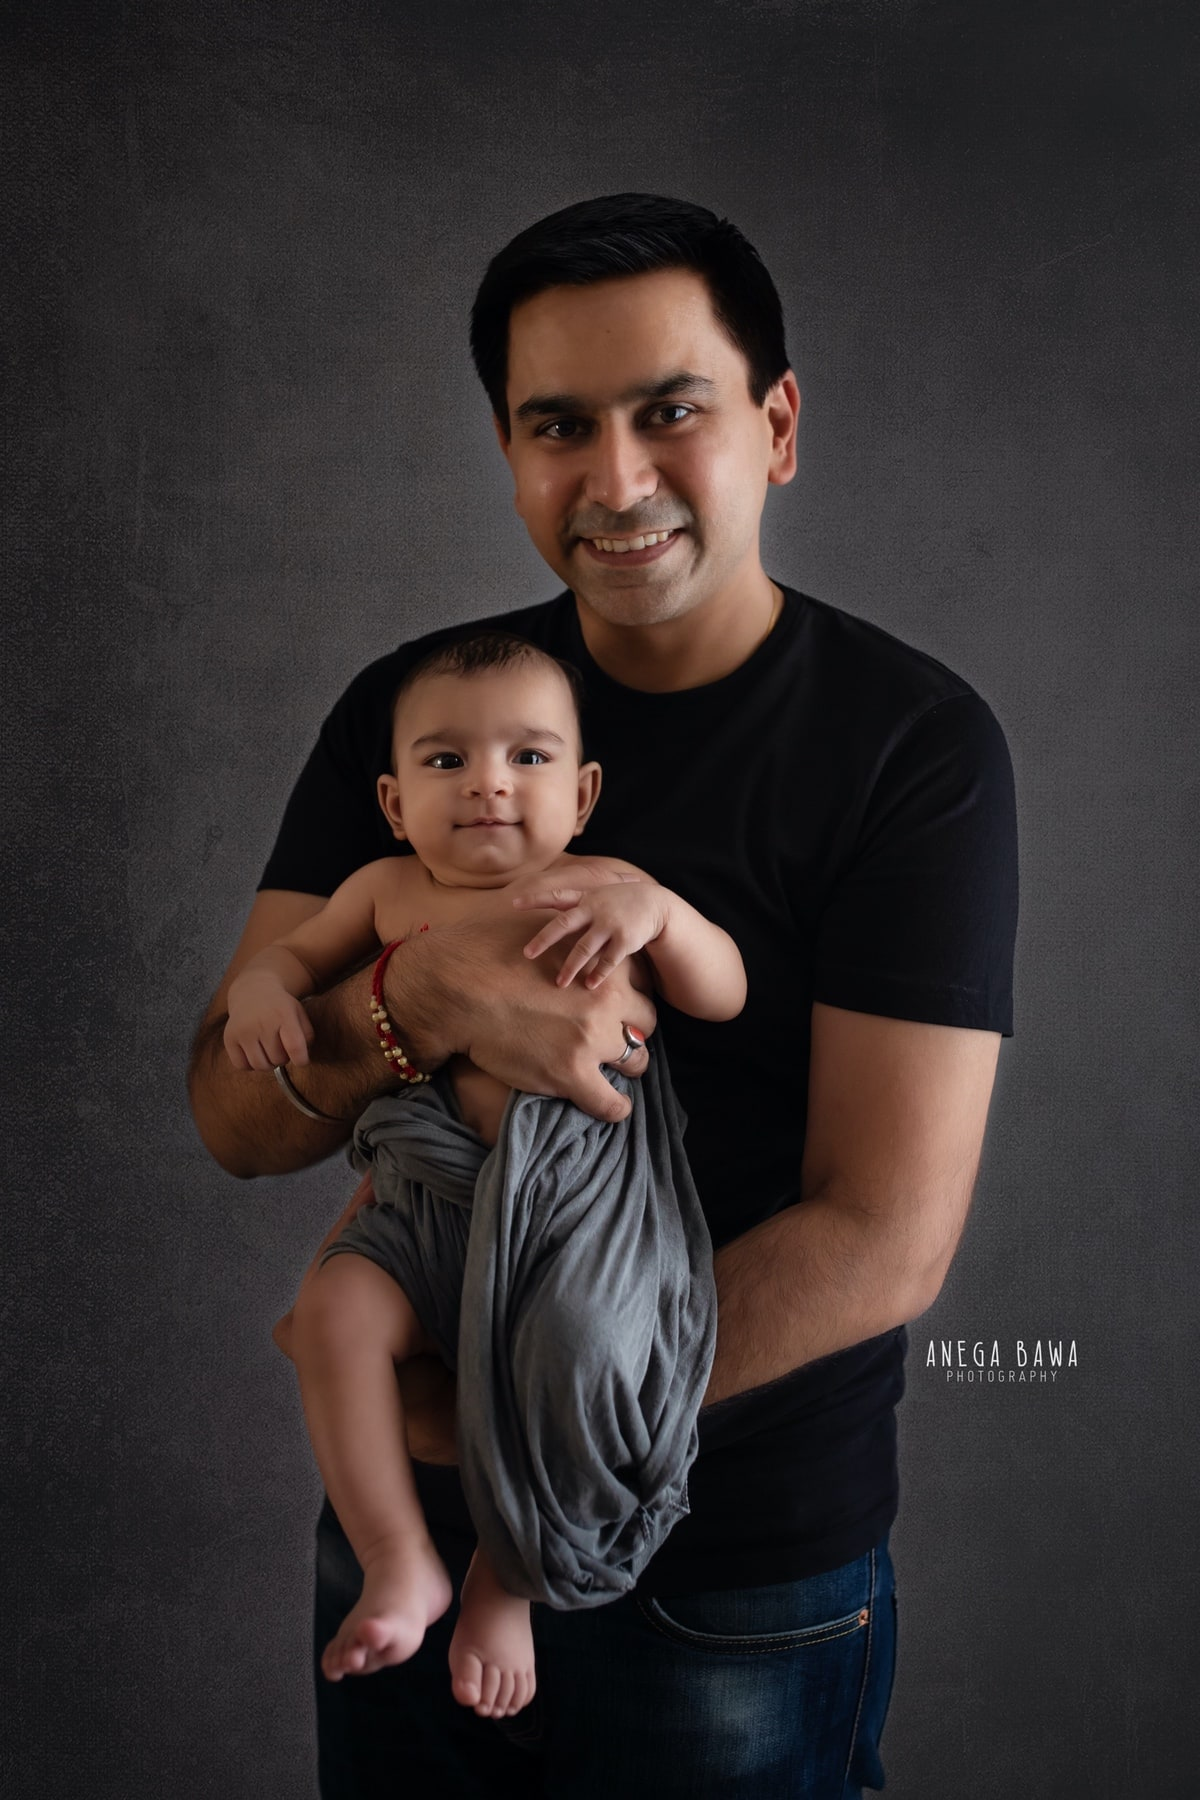 blue black father and baby photography delhi 3 months baby boy photoshoot gurgaon anega bawa